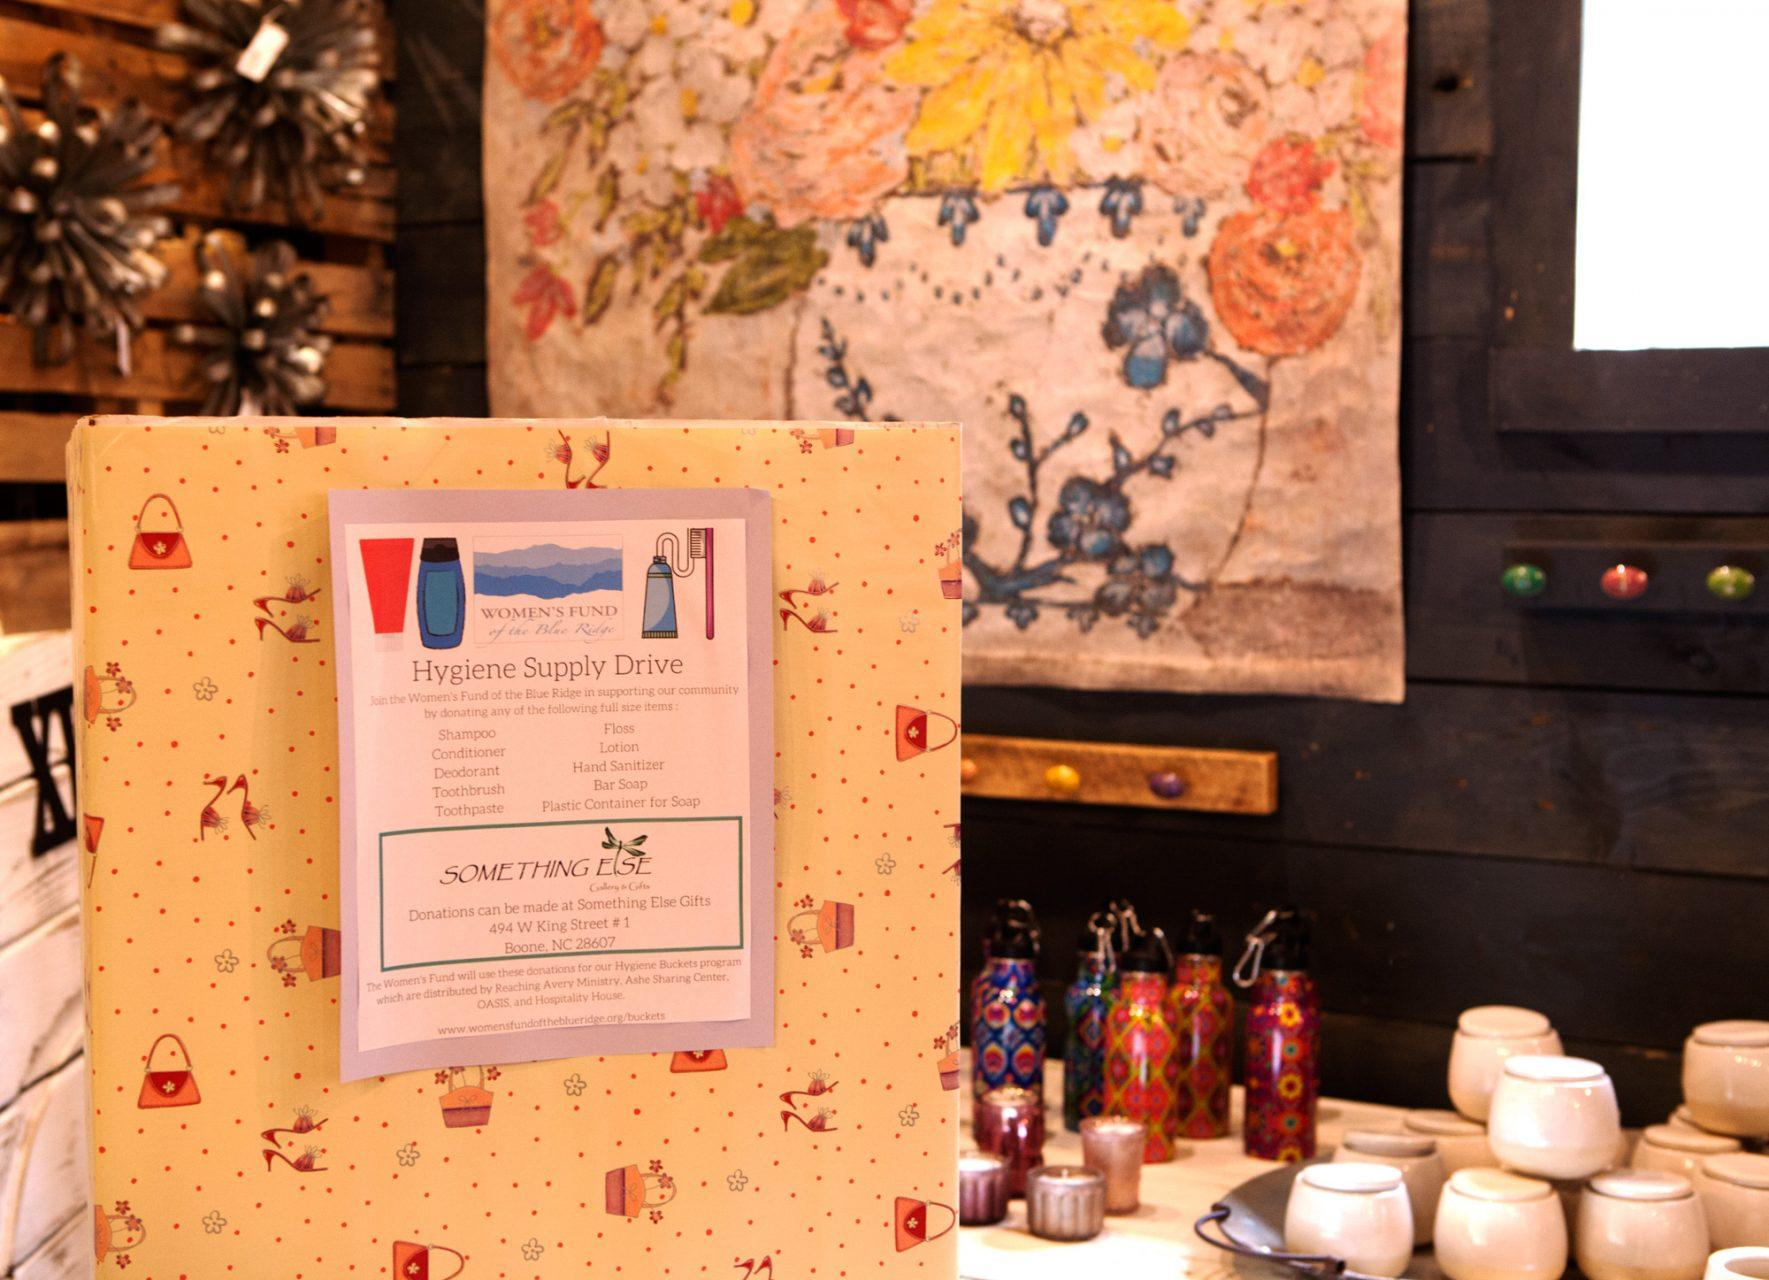 The donation box for the Hygiene Supply Drive, organized by the Women's Fund of the Blue Ridge, at Something Else in downtown Boone.